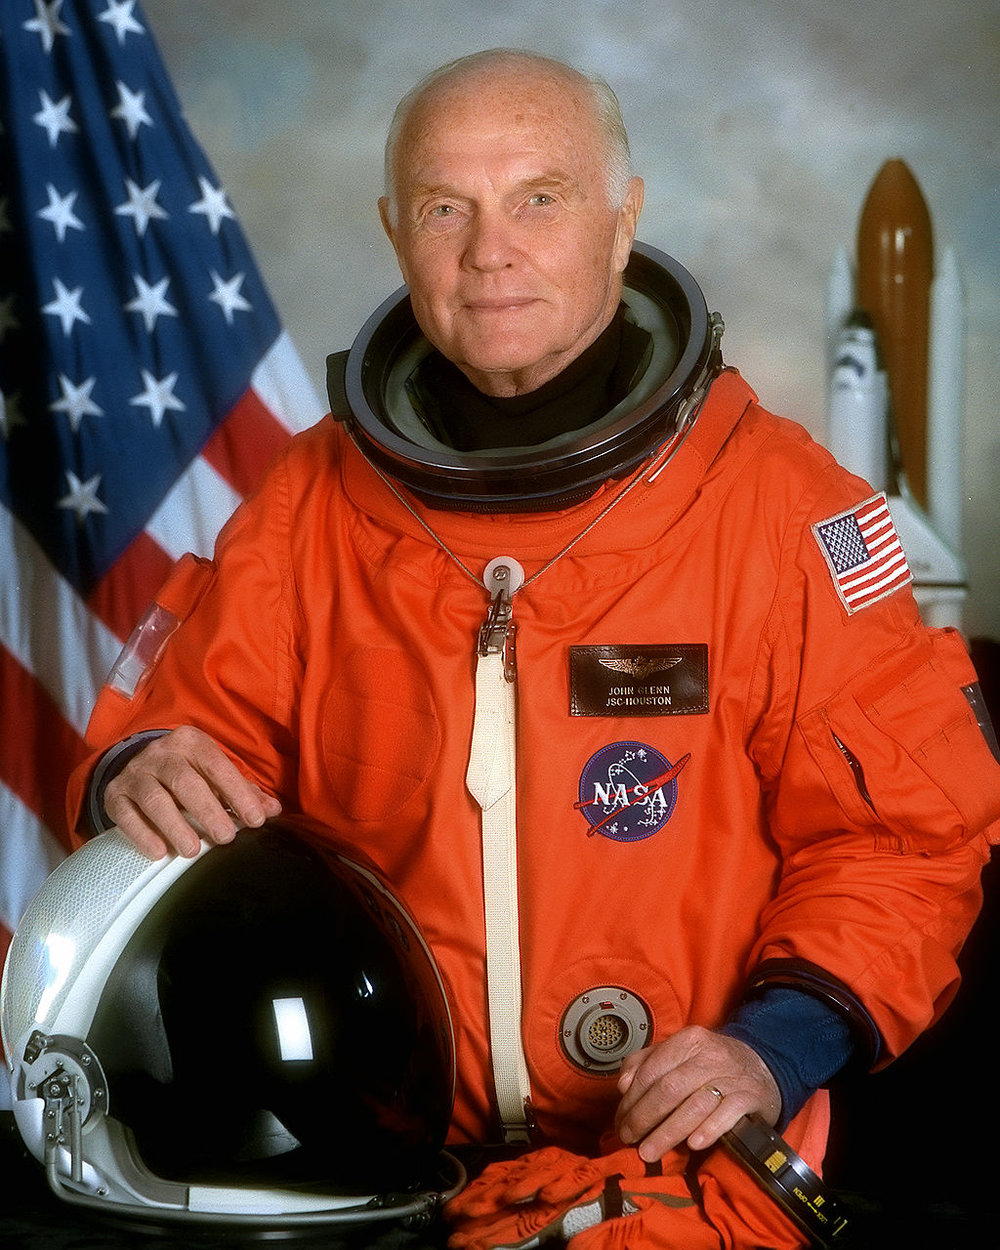 John Glenn's offical portait prior to his 1998 mission aboard the Space Shuttle Discovery. NASA